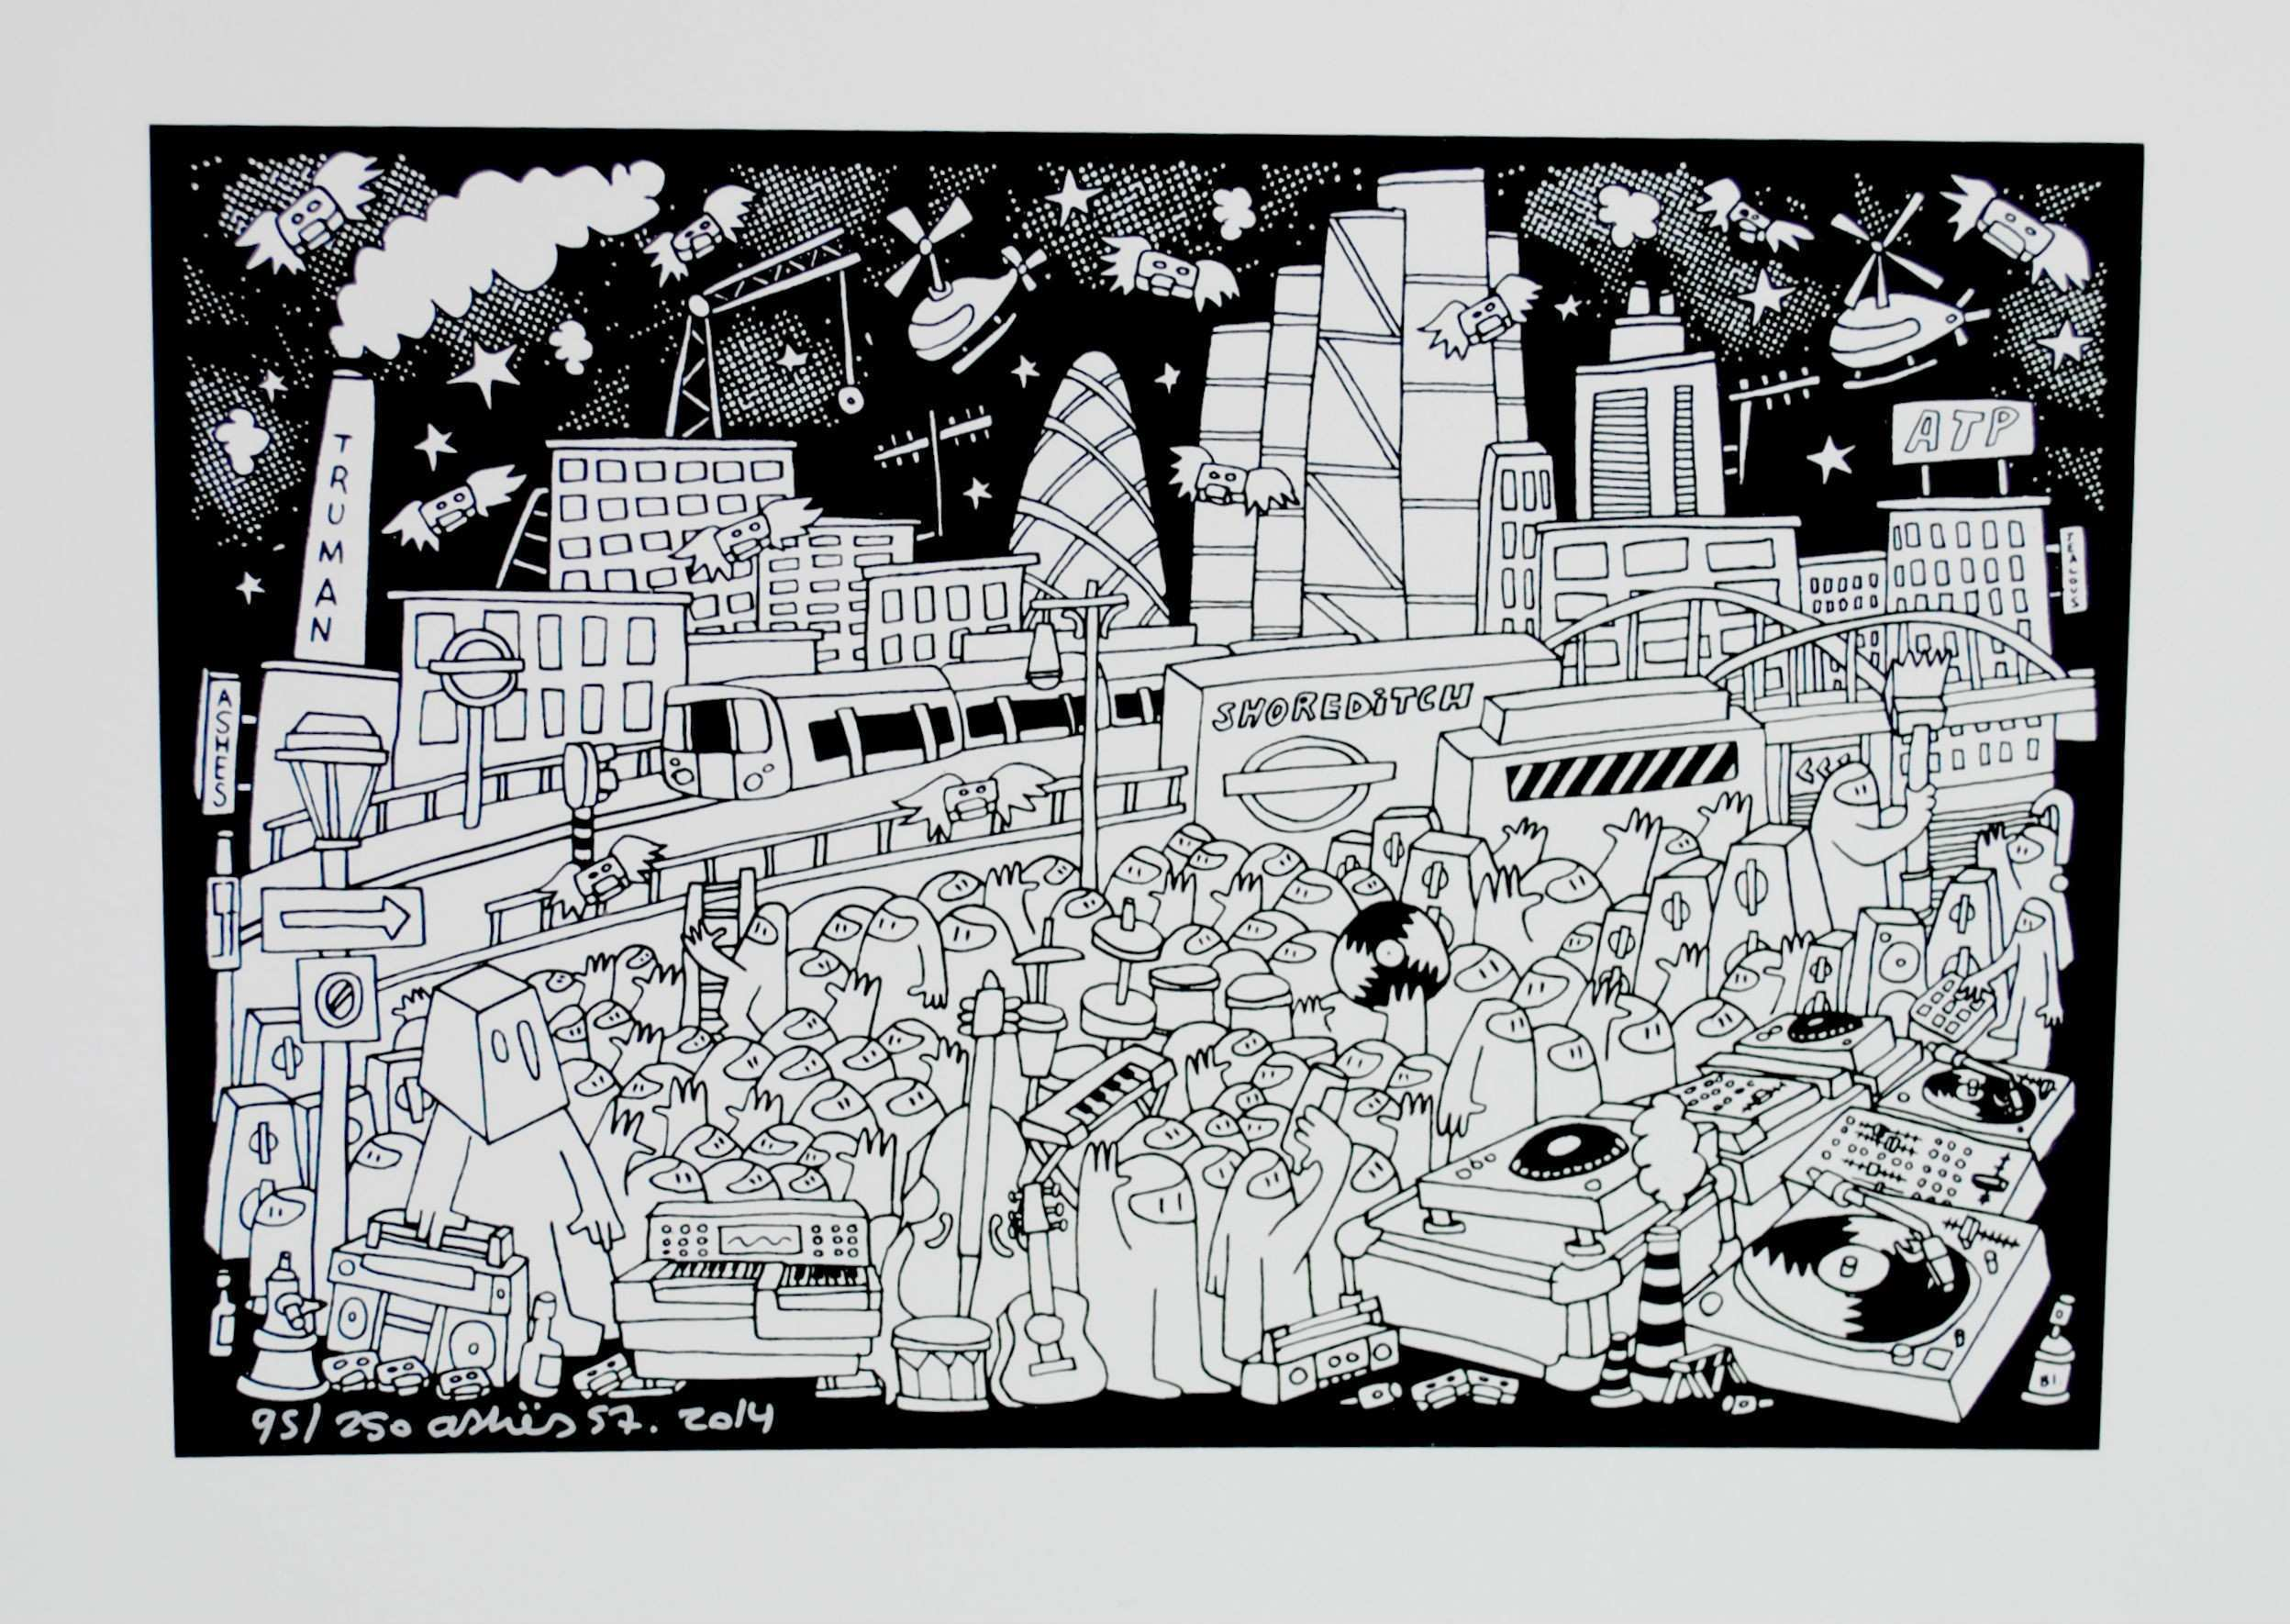 Shoreditch HIGH STREET Print by Ashes57